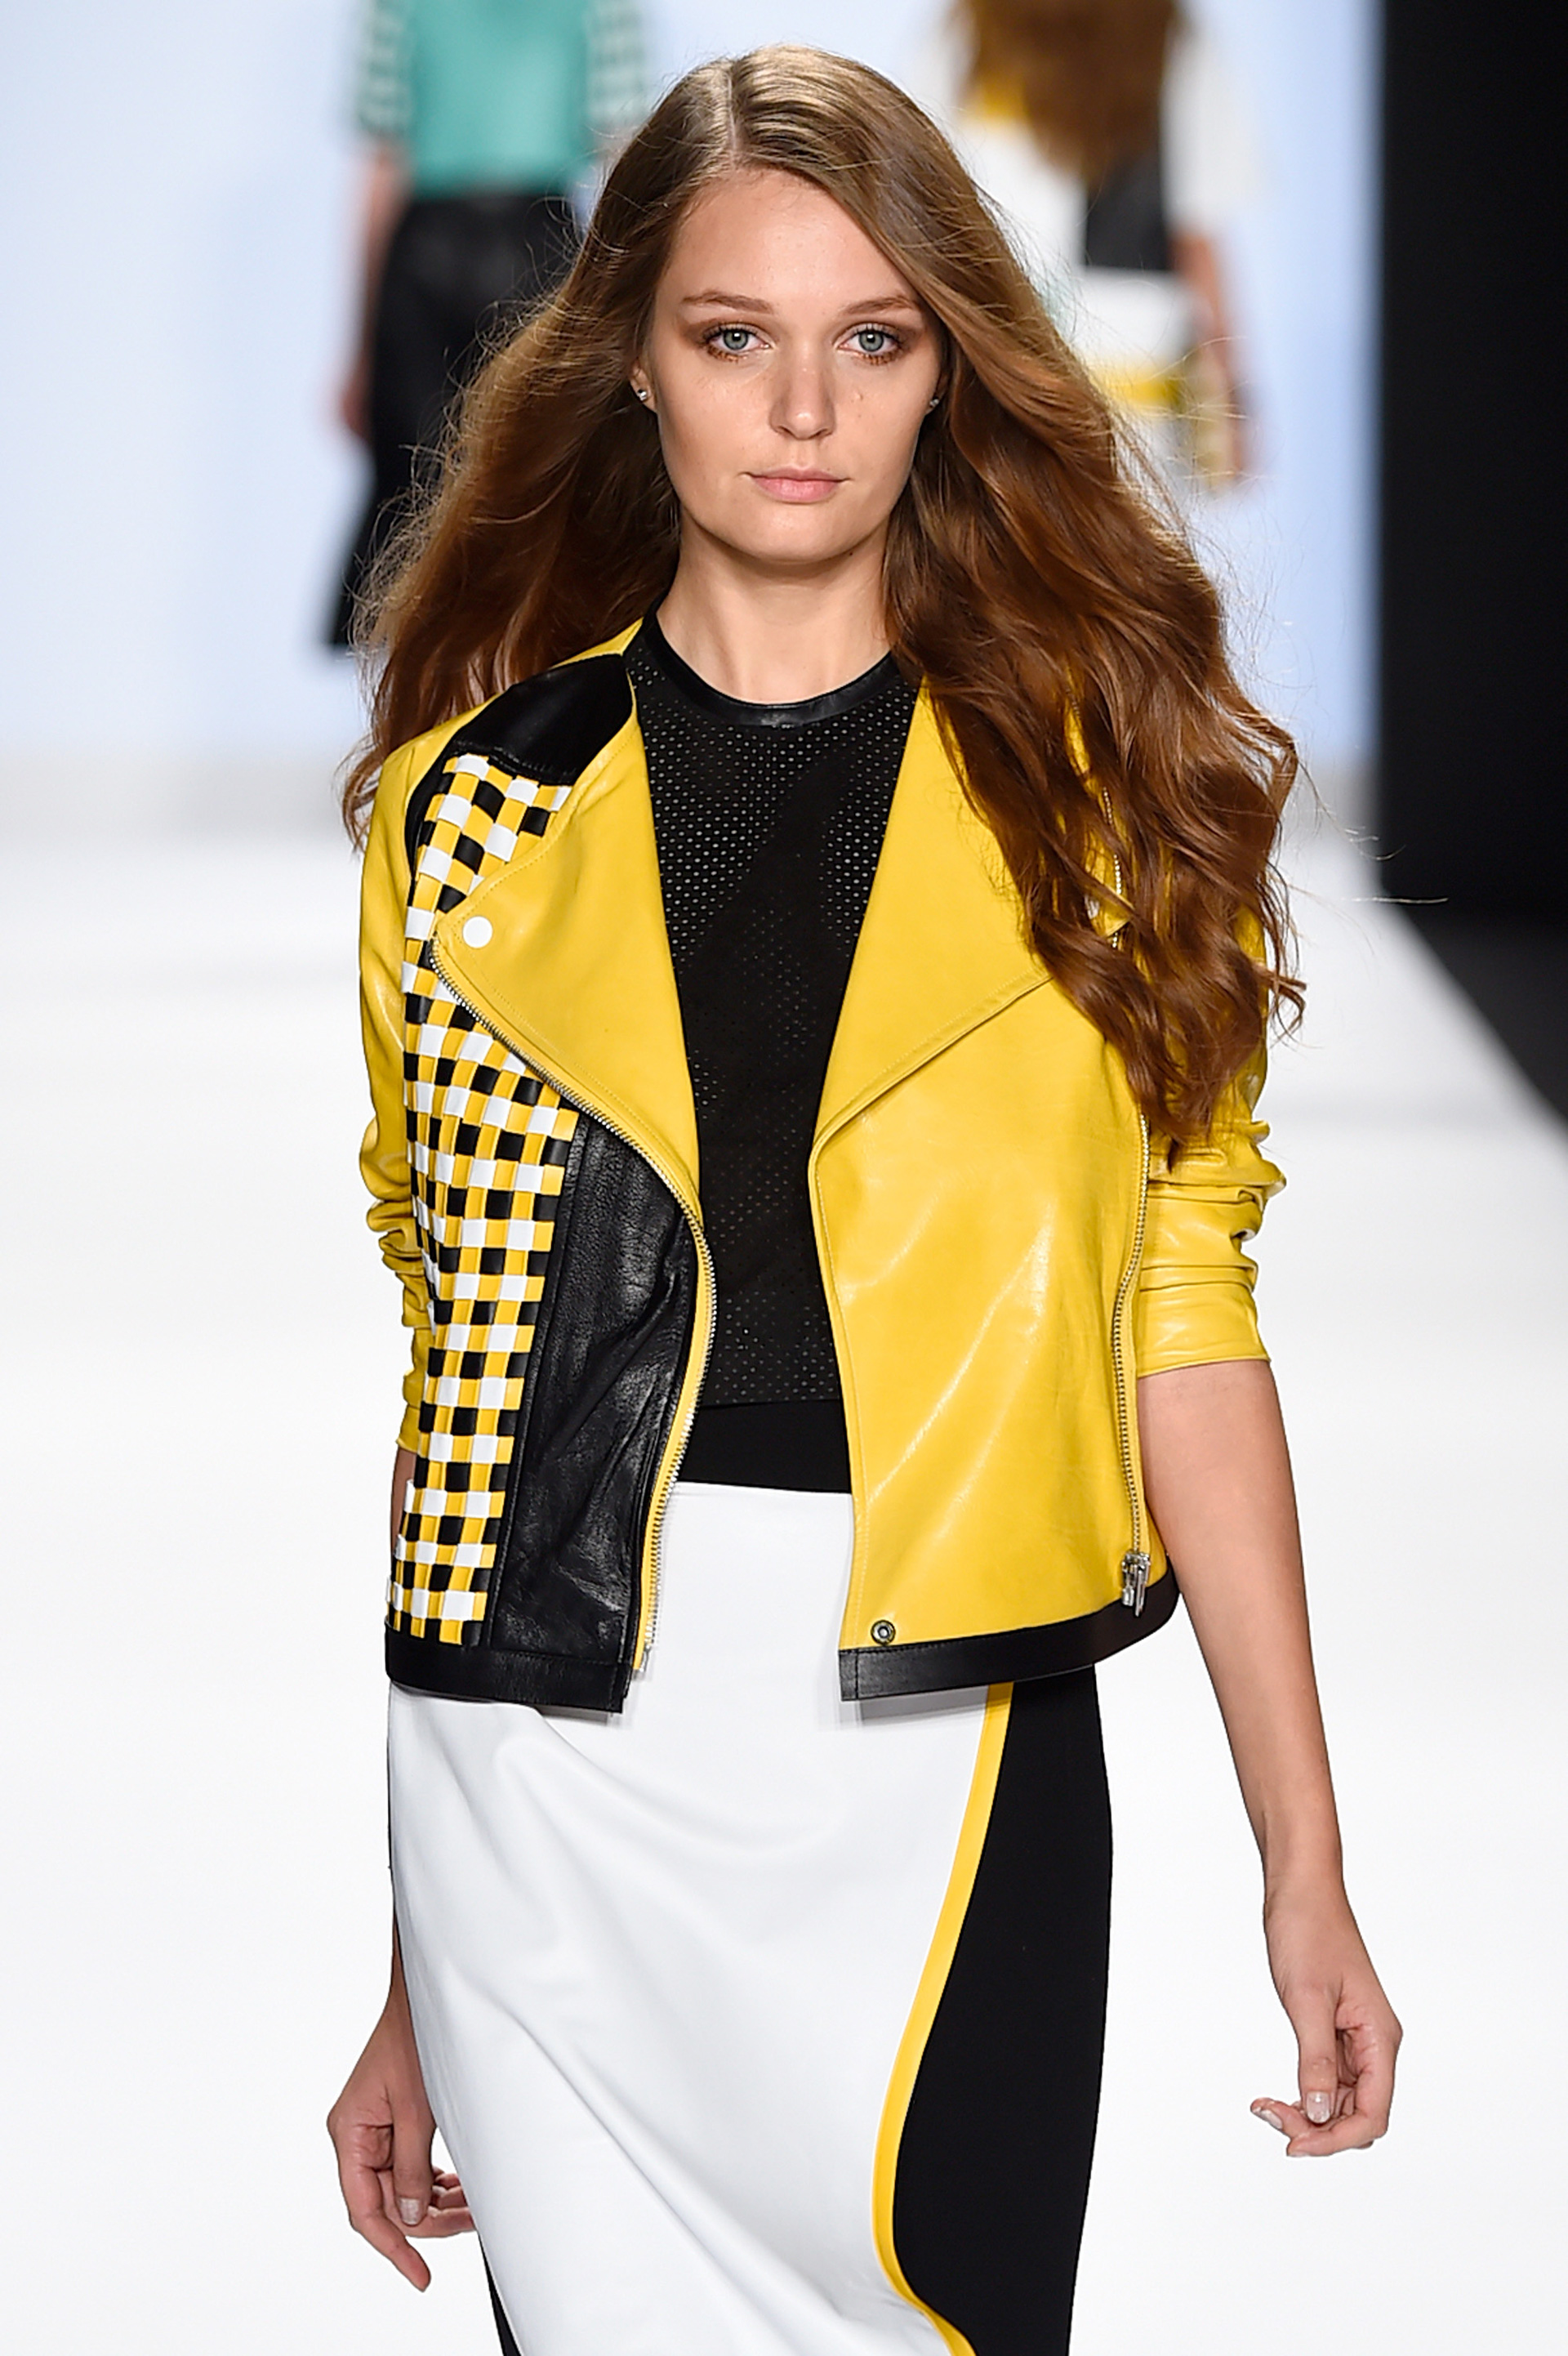 Project Runway's Fashion Week show 9